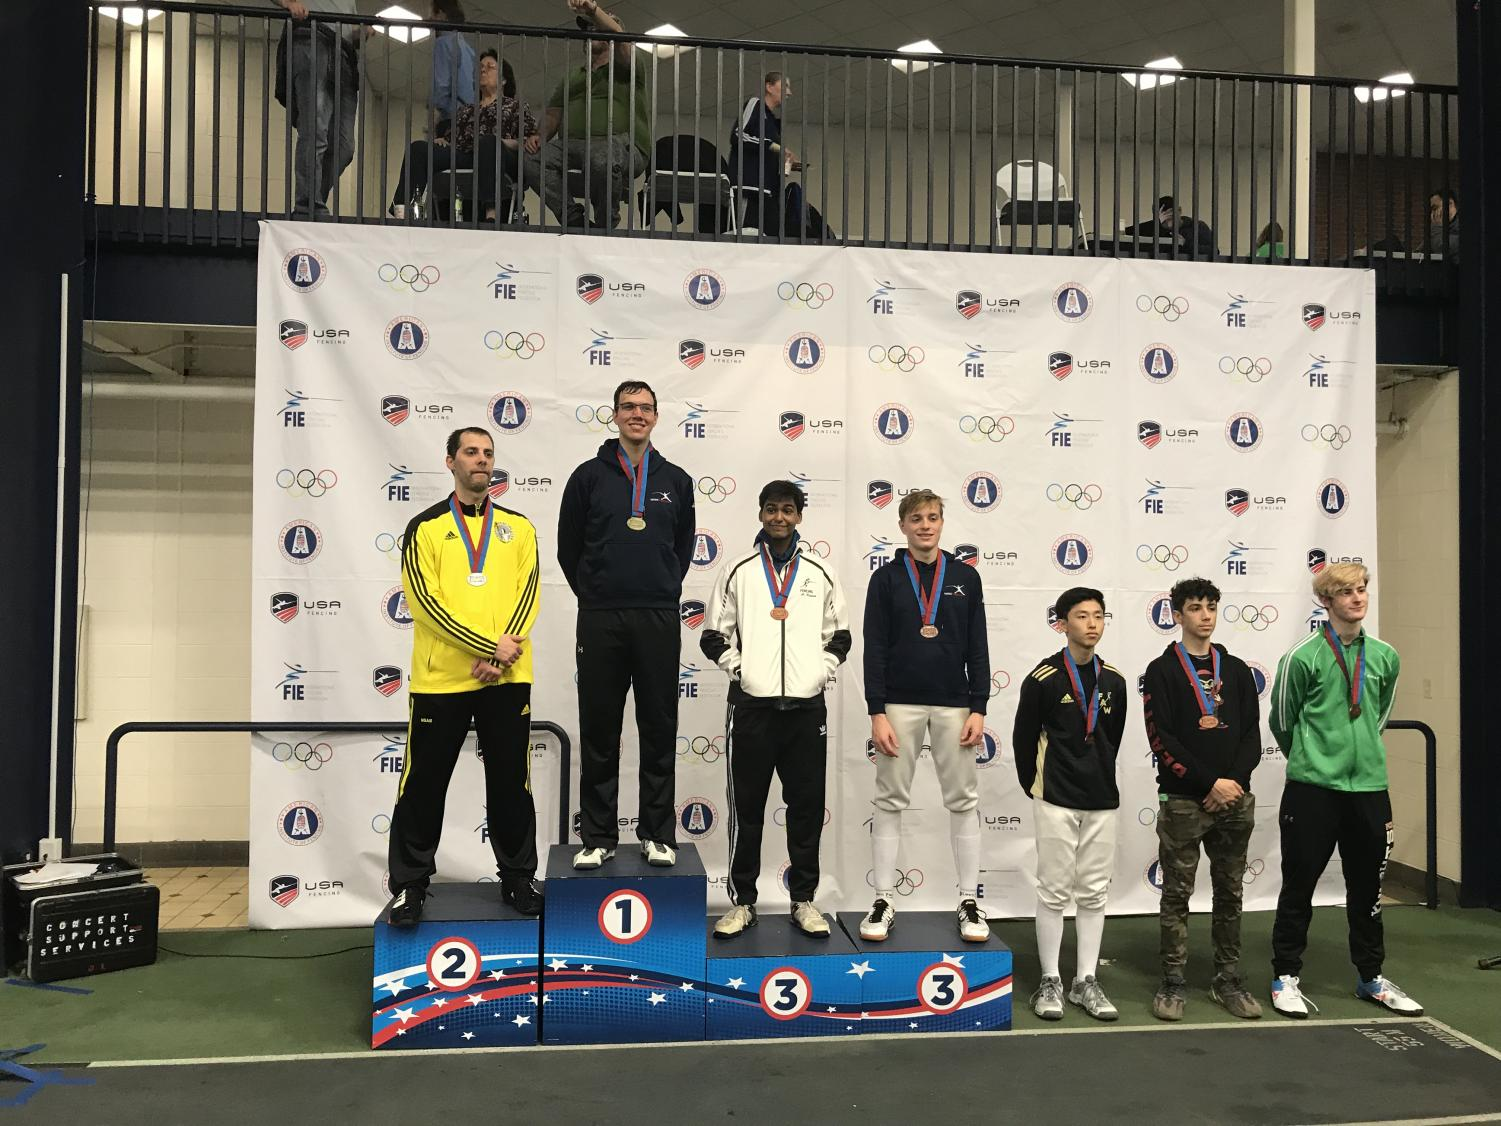 Senior Arthur Andreev [fourth from left] at the American Challenge in Madison, New Jersey on Oct. 6 2019.  Andreev tied for third in the Div 1-A Men's Épée event.